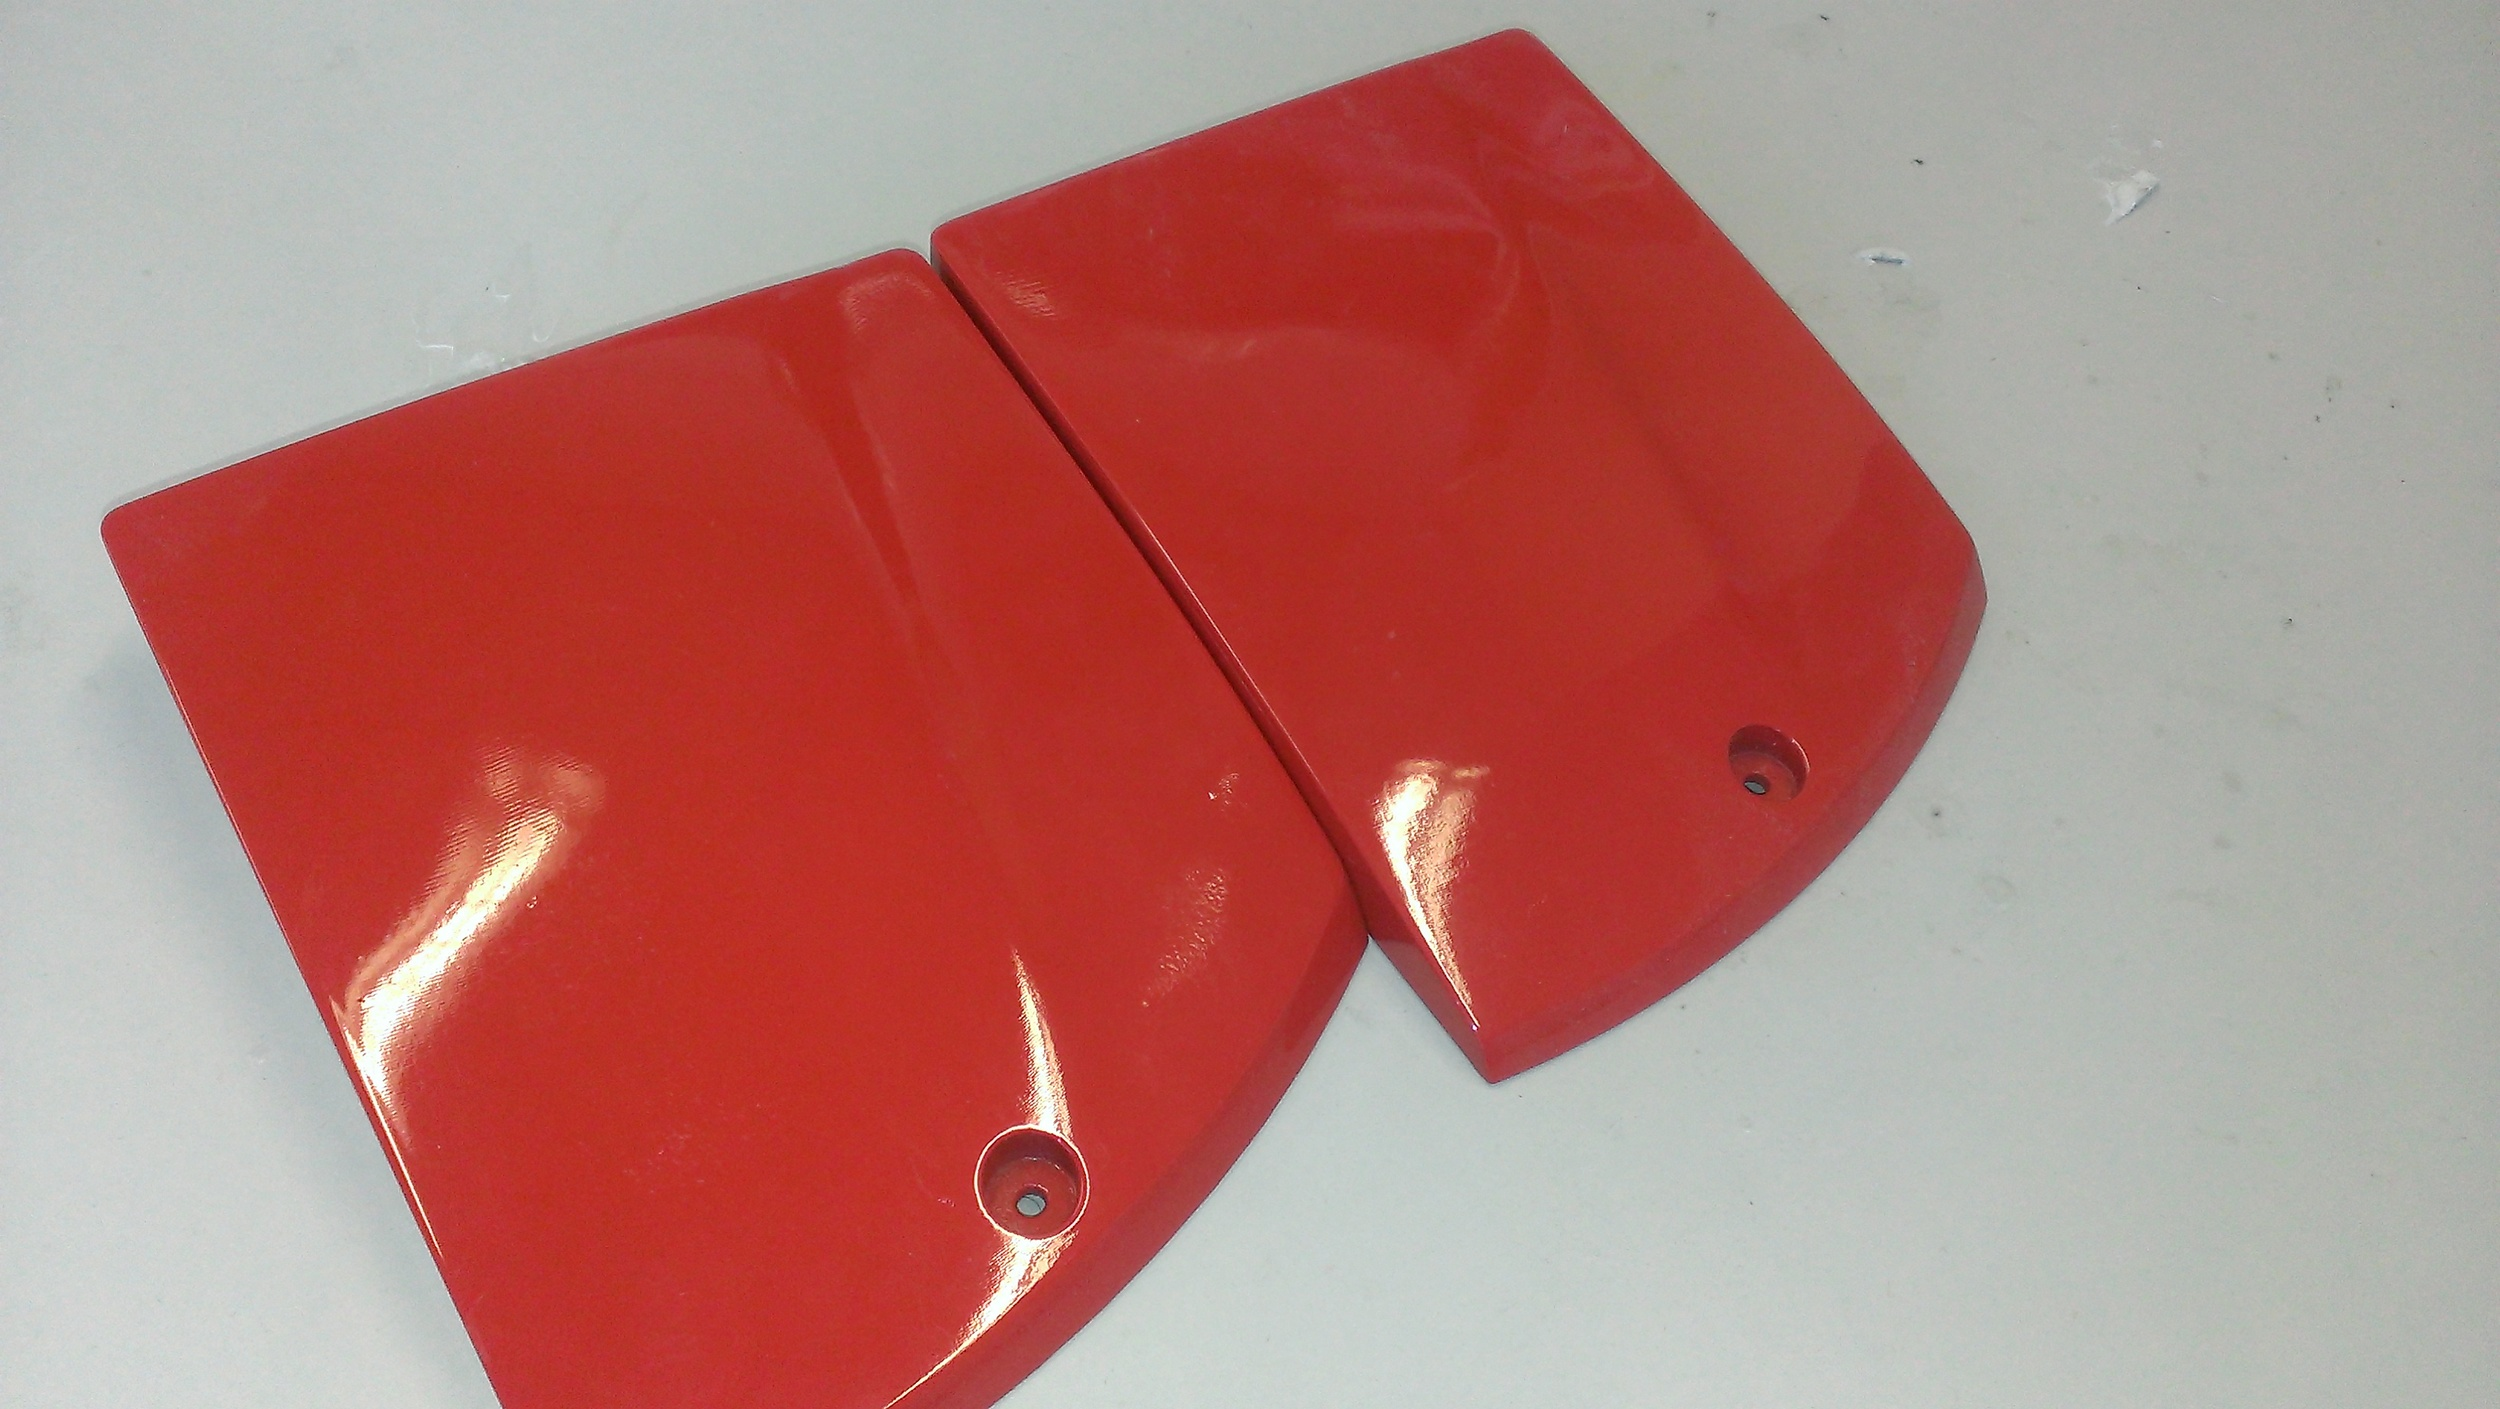 Gloss Finish Body Pieces for Ryno Motor Bike.